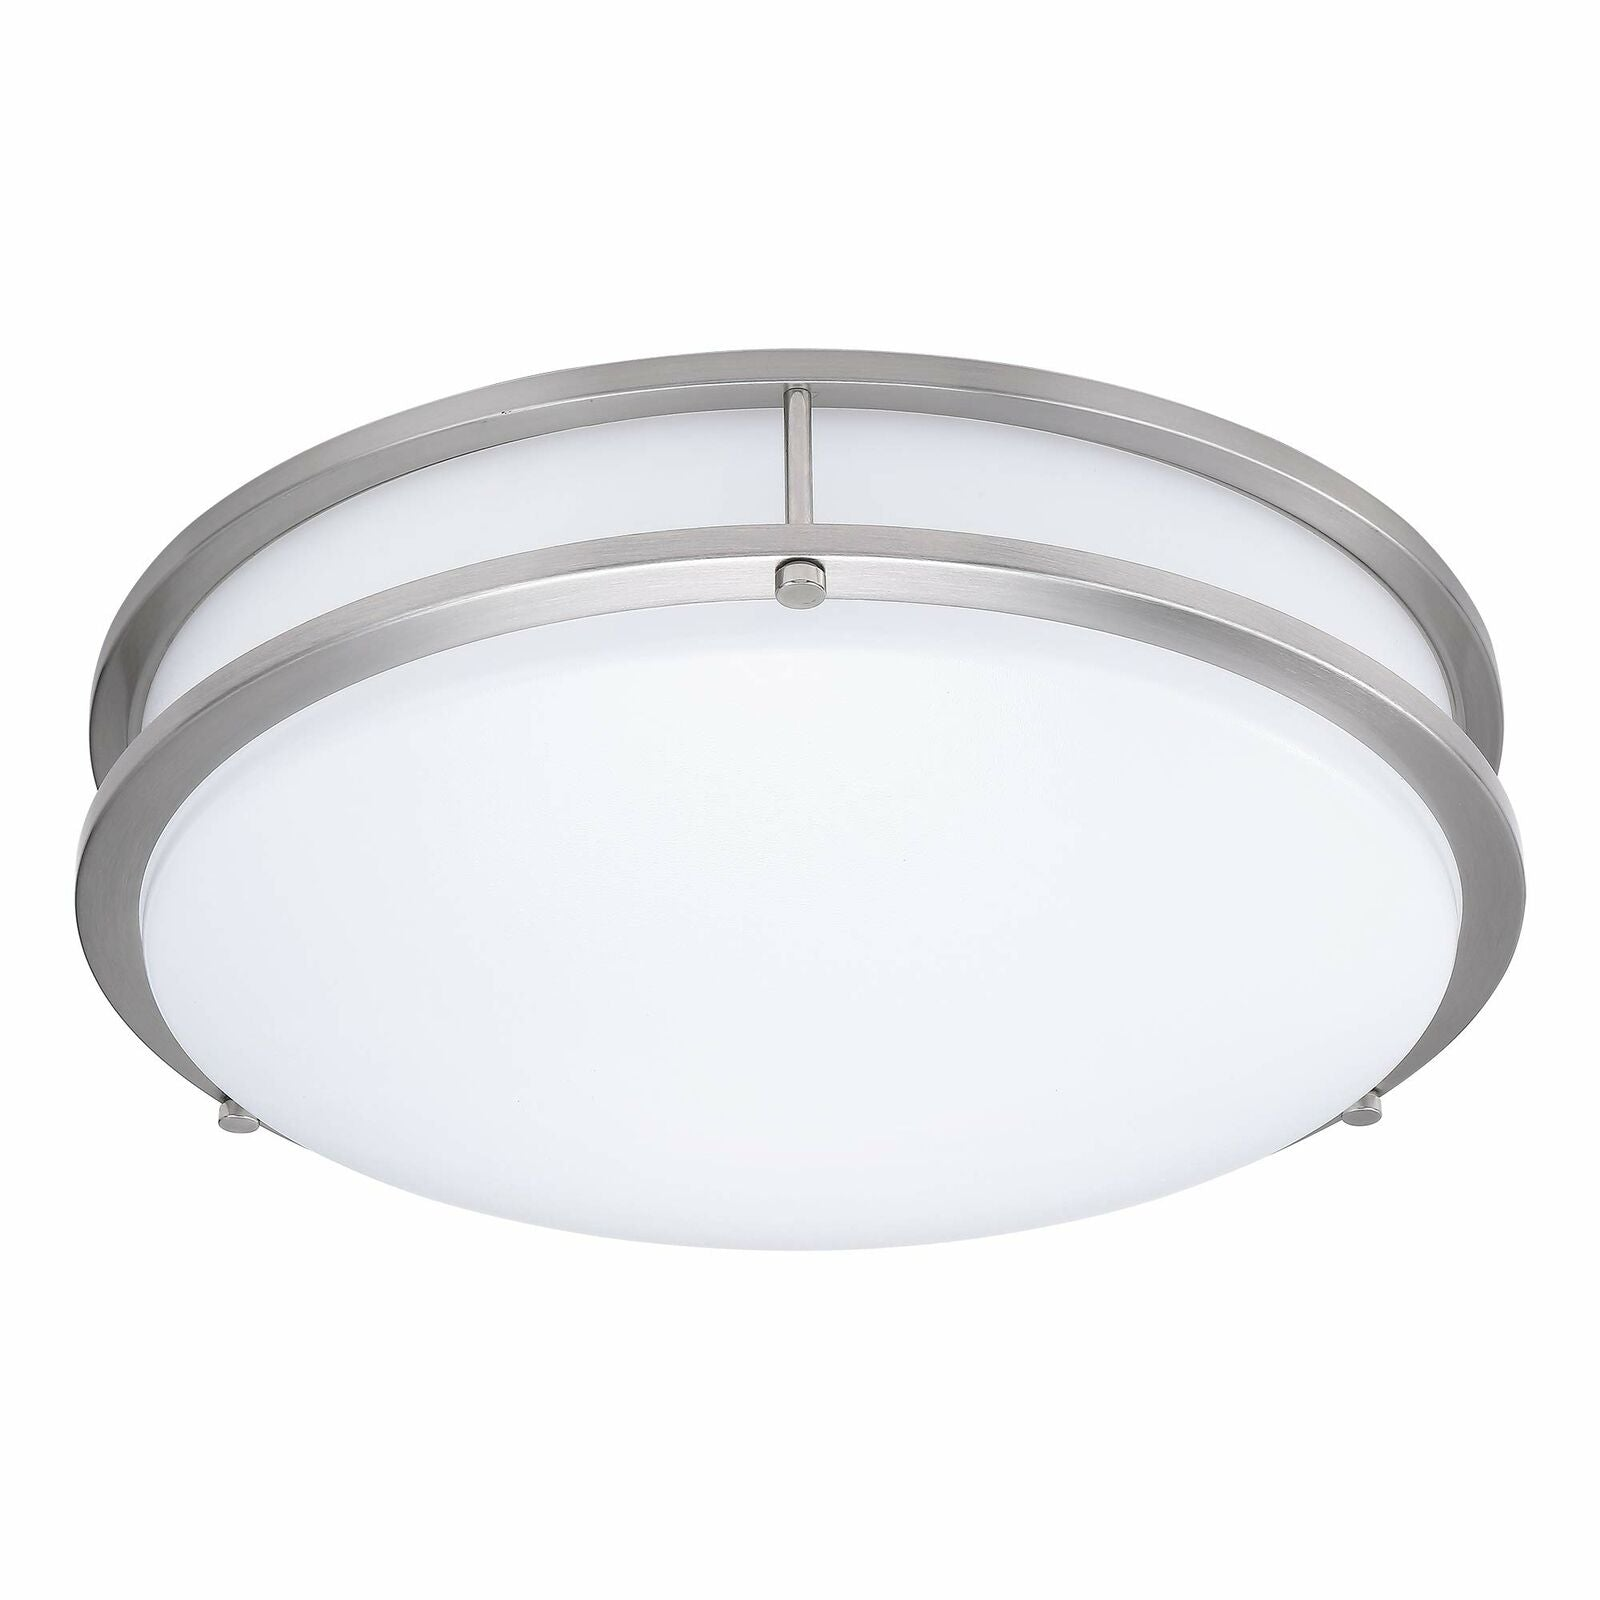 QPlus 12 Inch LED Architectural Flush Mount 20Watts - Brushed Nickel